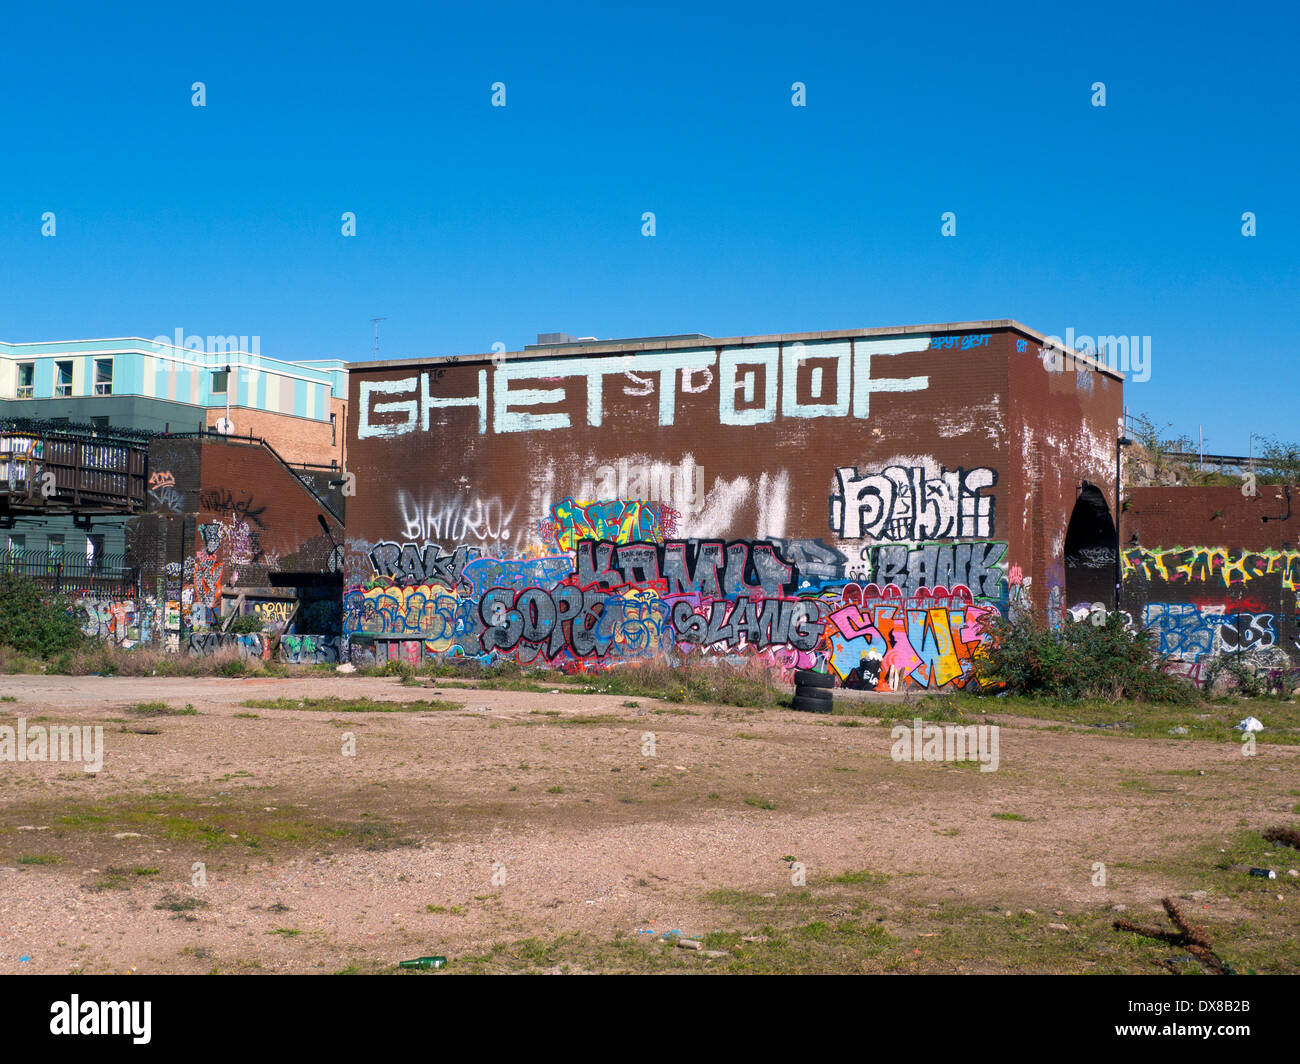 Graffiti on the side of a building bordering wasteland near Pedley Street Brick Lane E1 London UK KATHY DEWITT - Stock Image